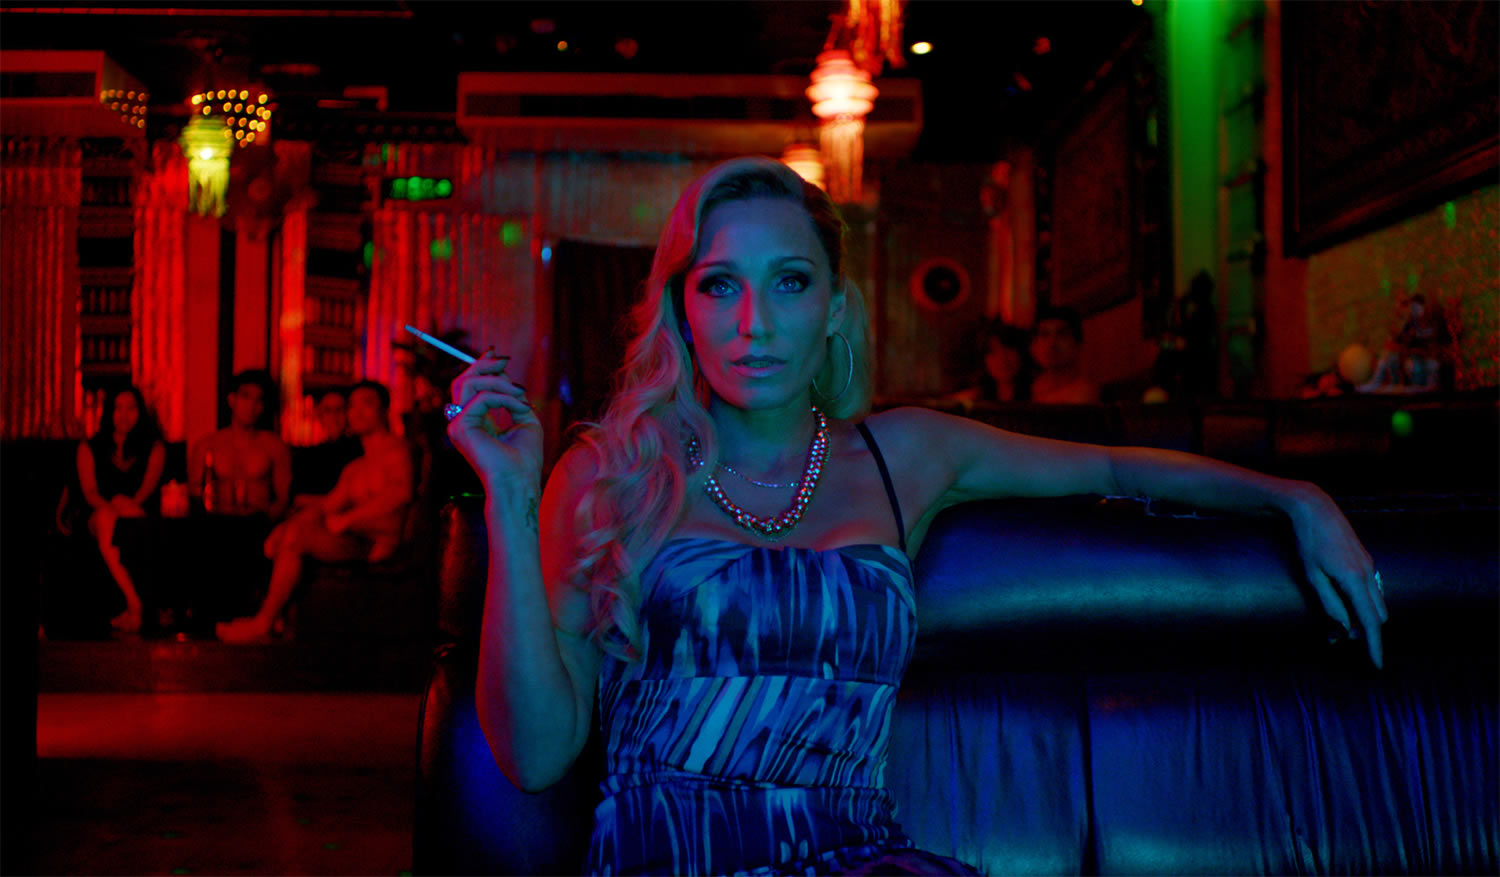 neon lights over kristen scott thomas in Only God Forgives